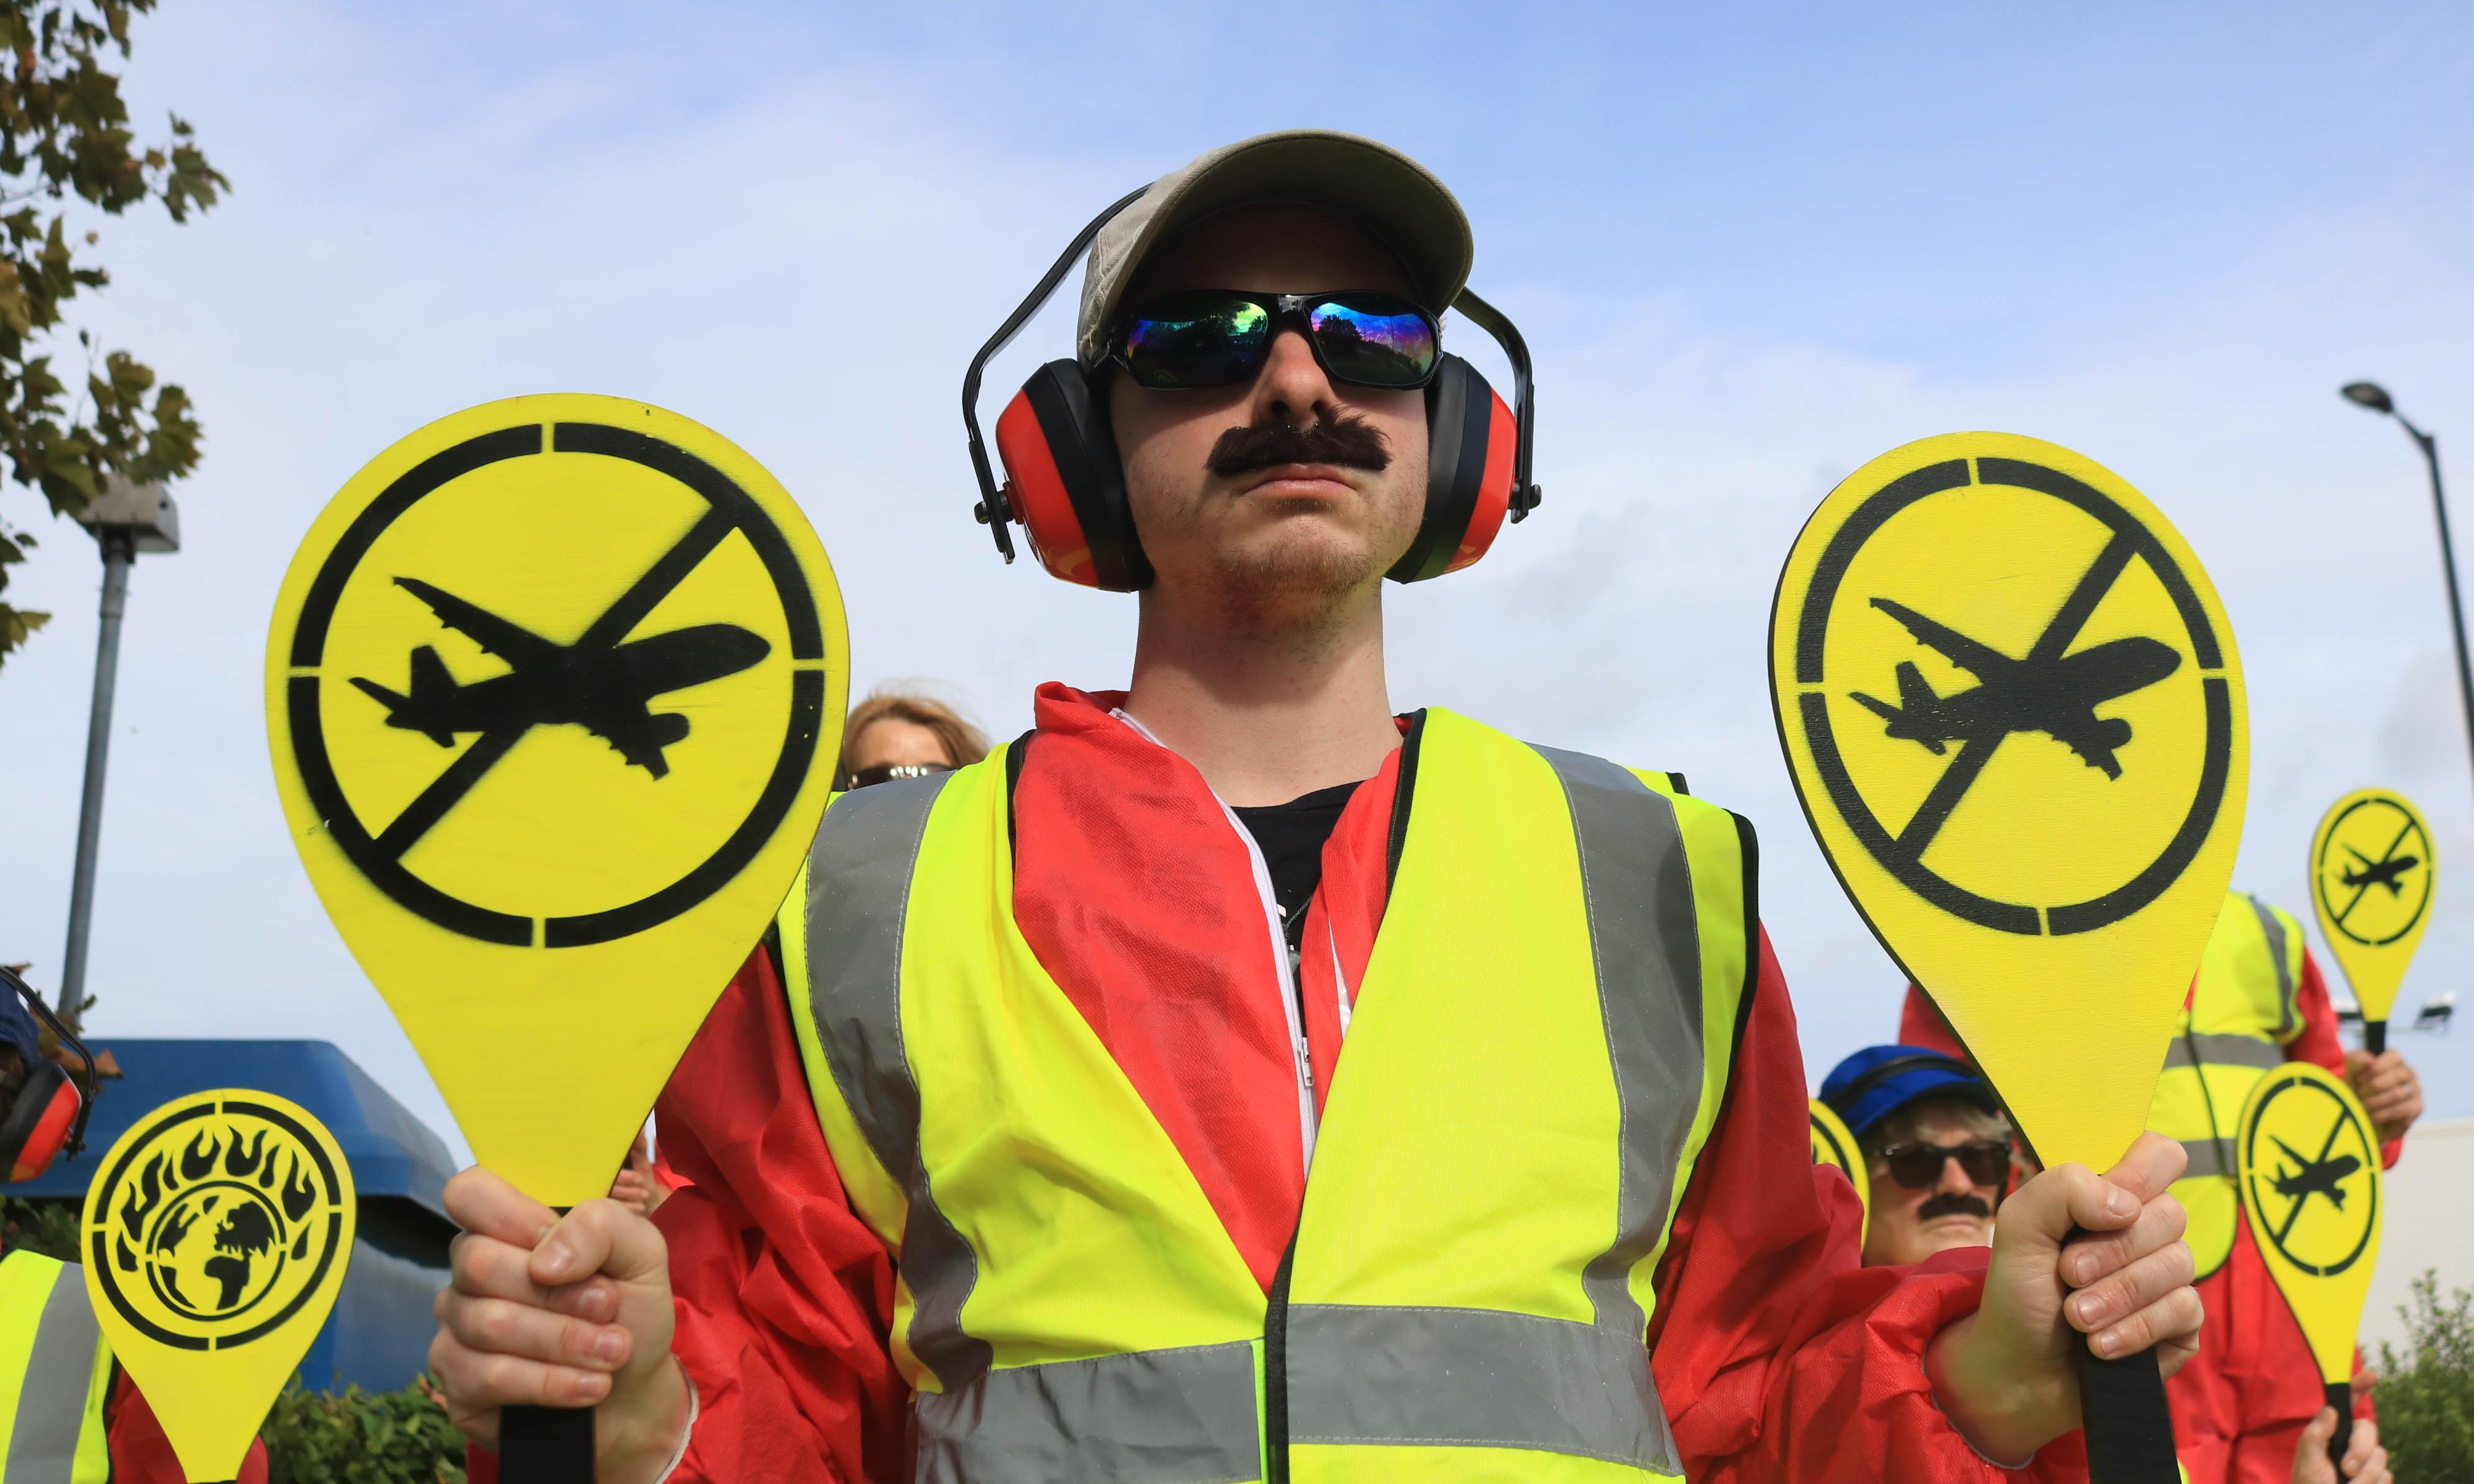 Climate protests have roots that go deep into the rich history of British social change